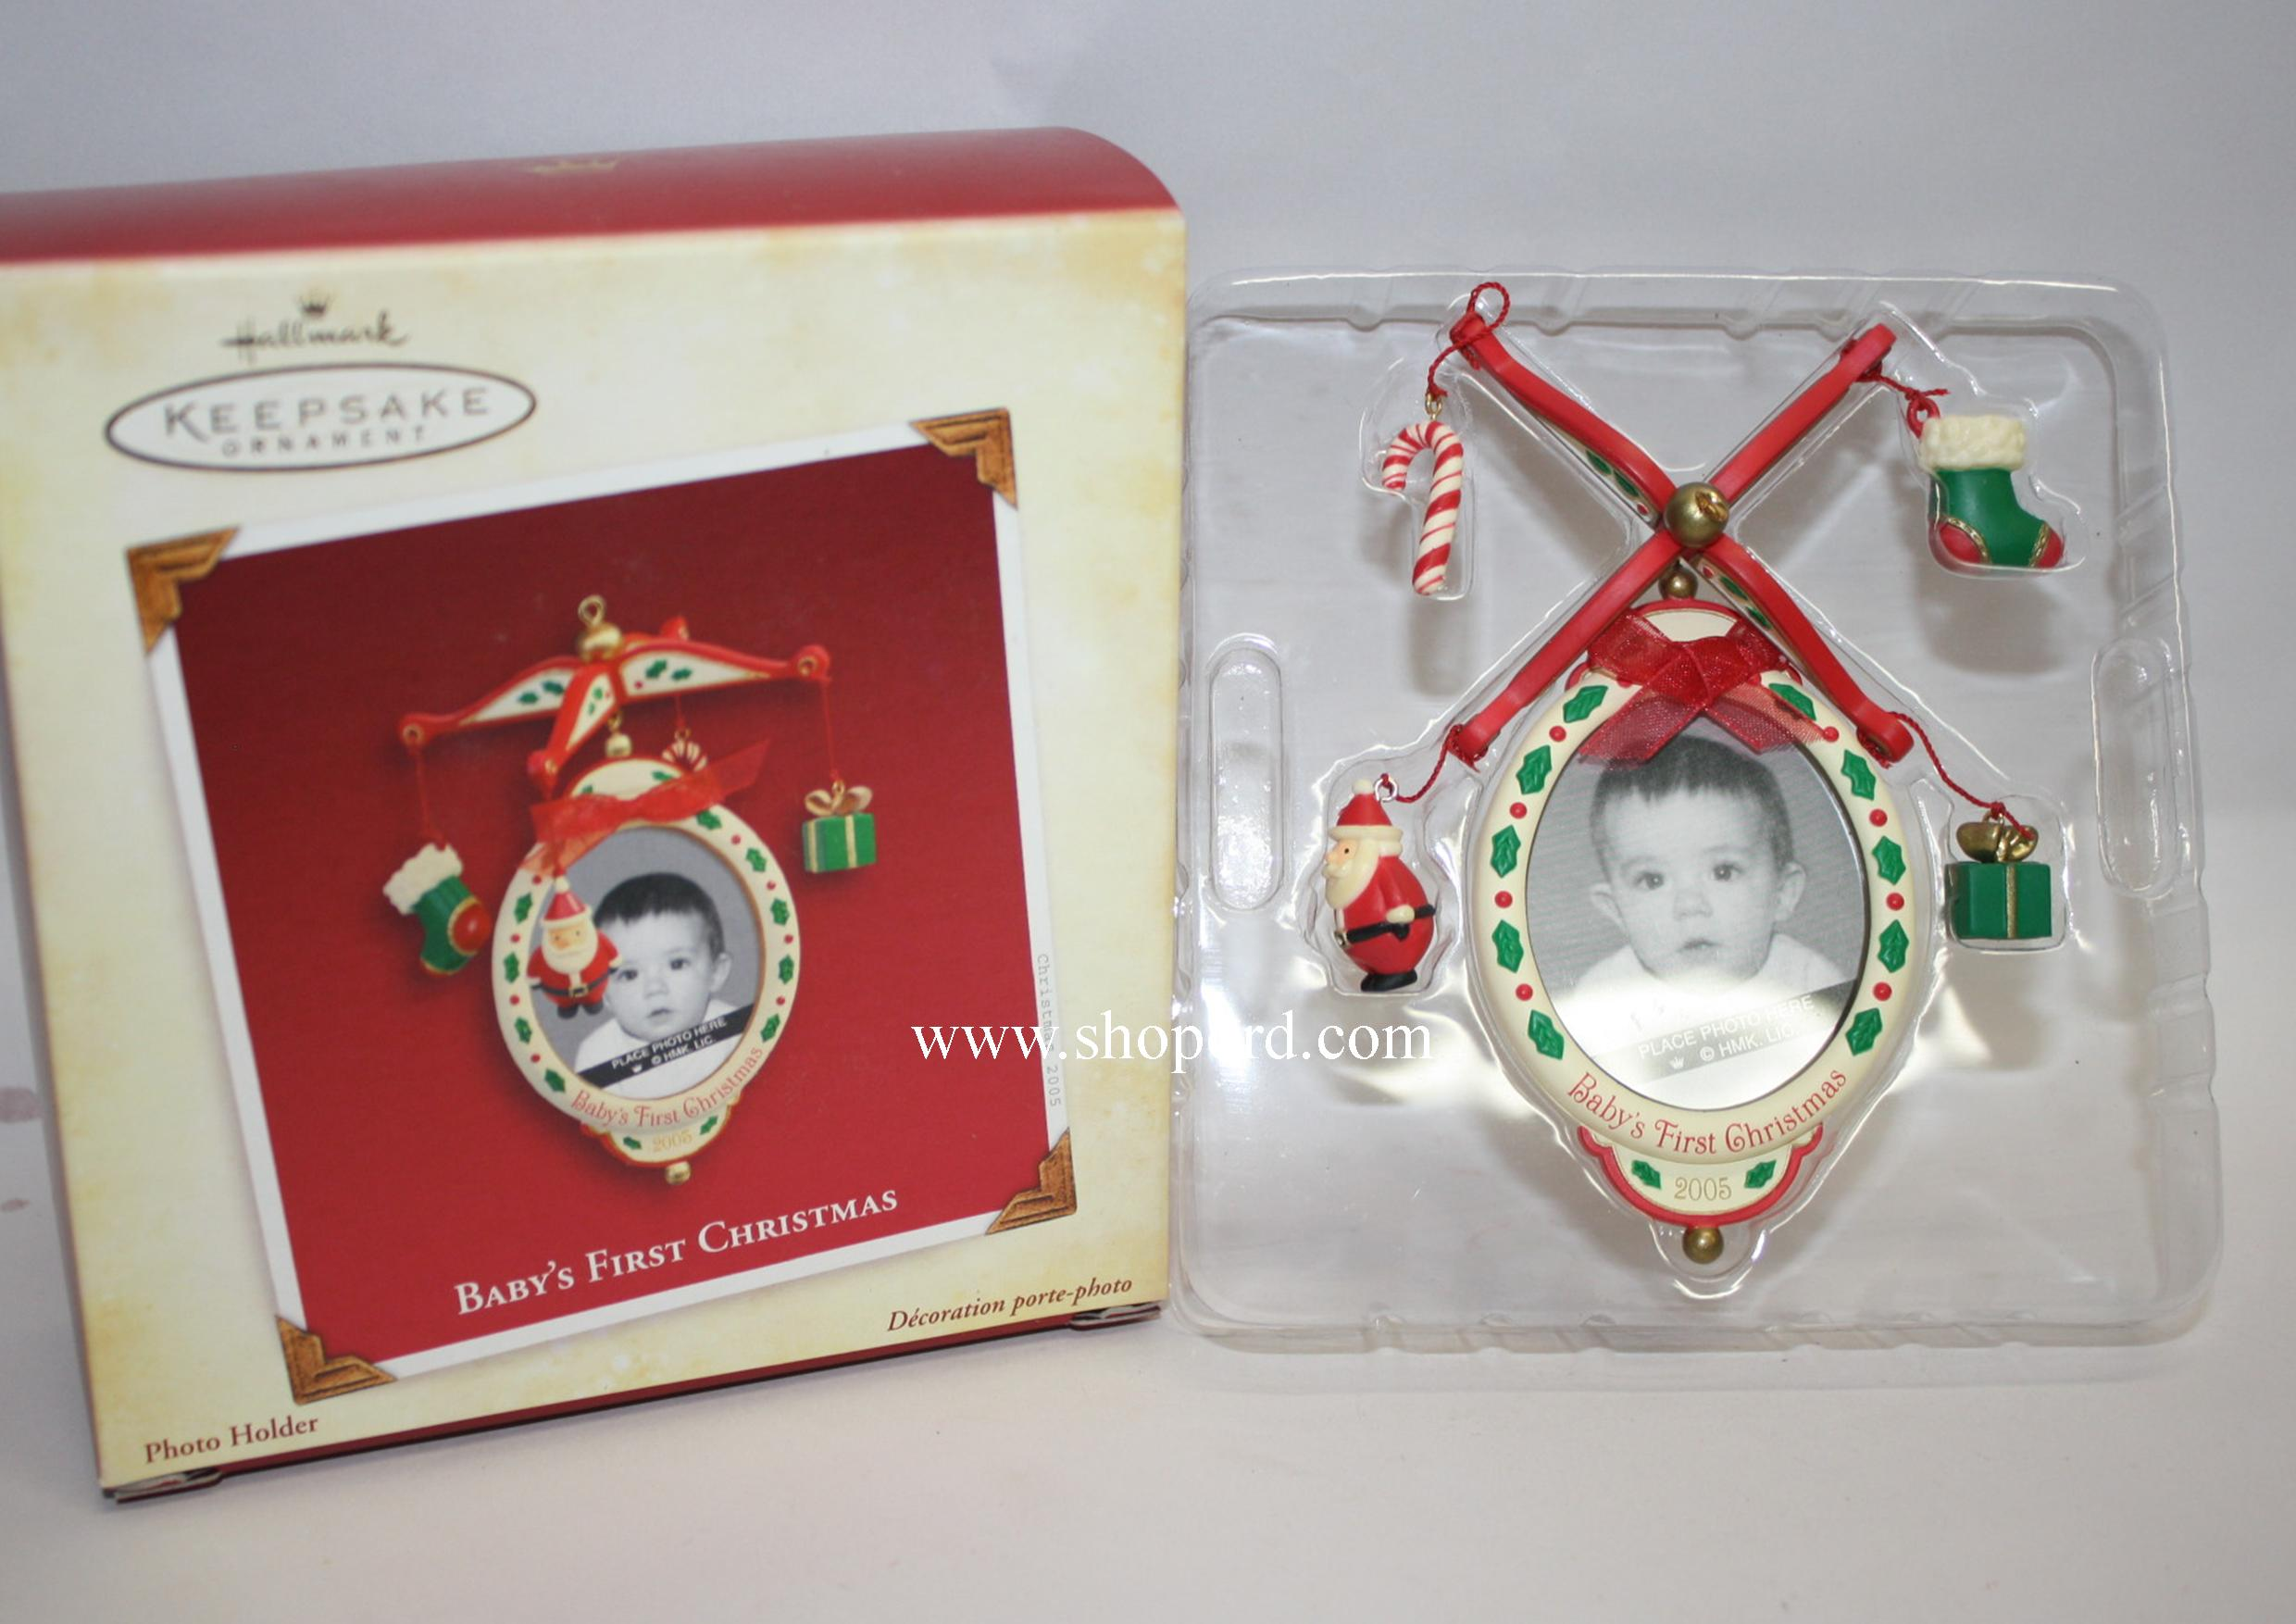 Hallmark 2005 Baby's First Christmas Photo Holder Ornament QXG4622 Damaged Box